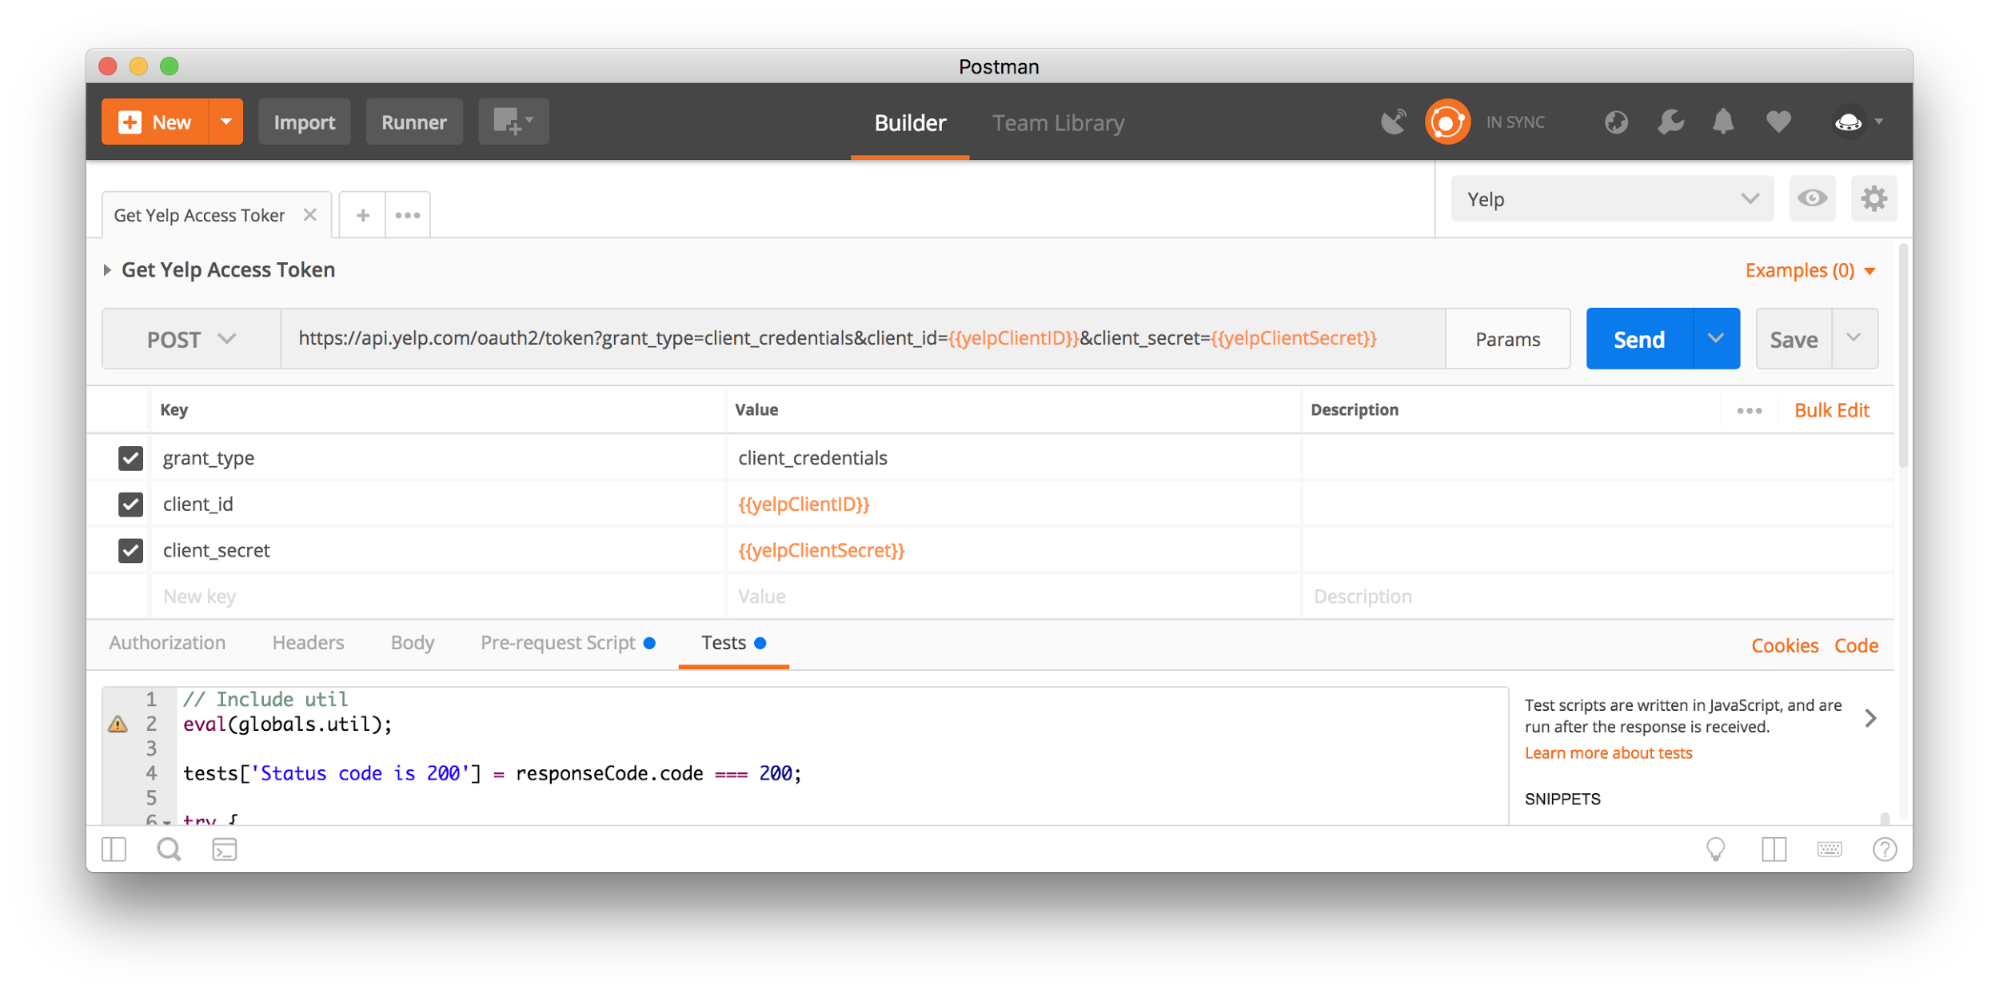 10 tips for working with Postman variables - Postman Blog